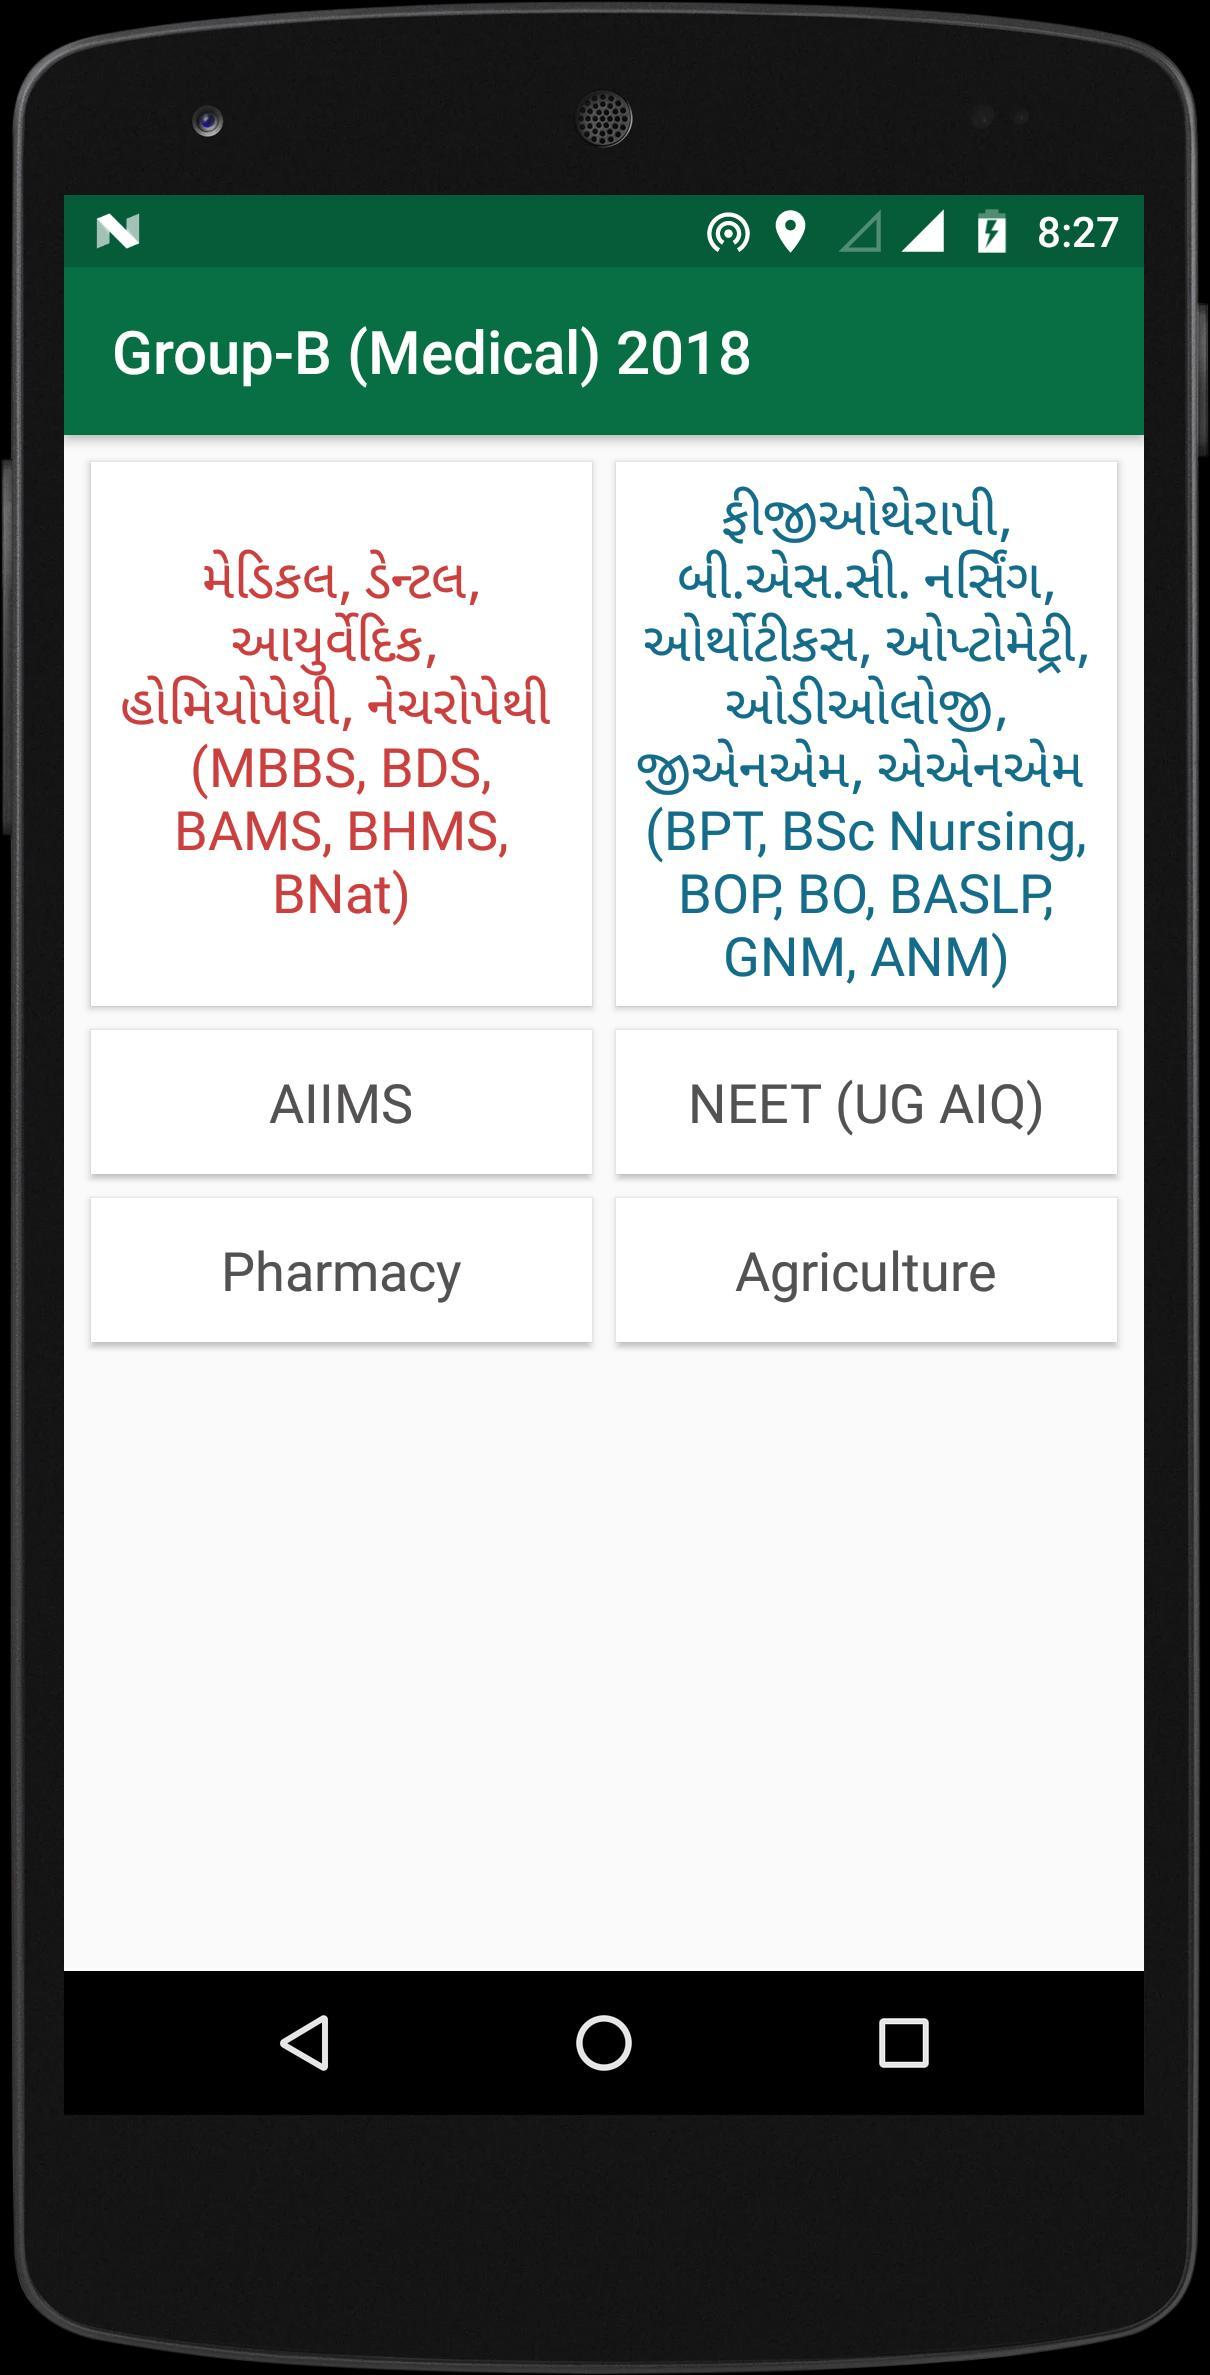 Gujarat Medical Admission 2019 for Android - APK Download